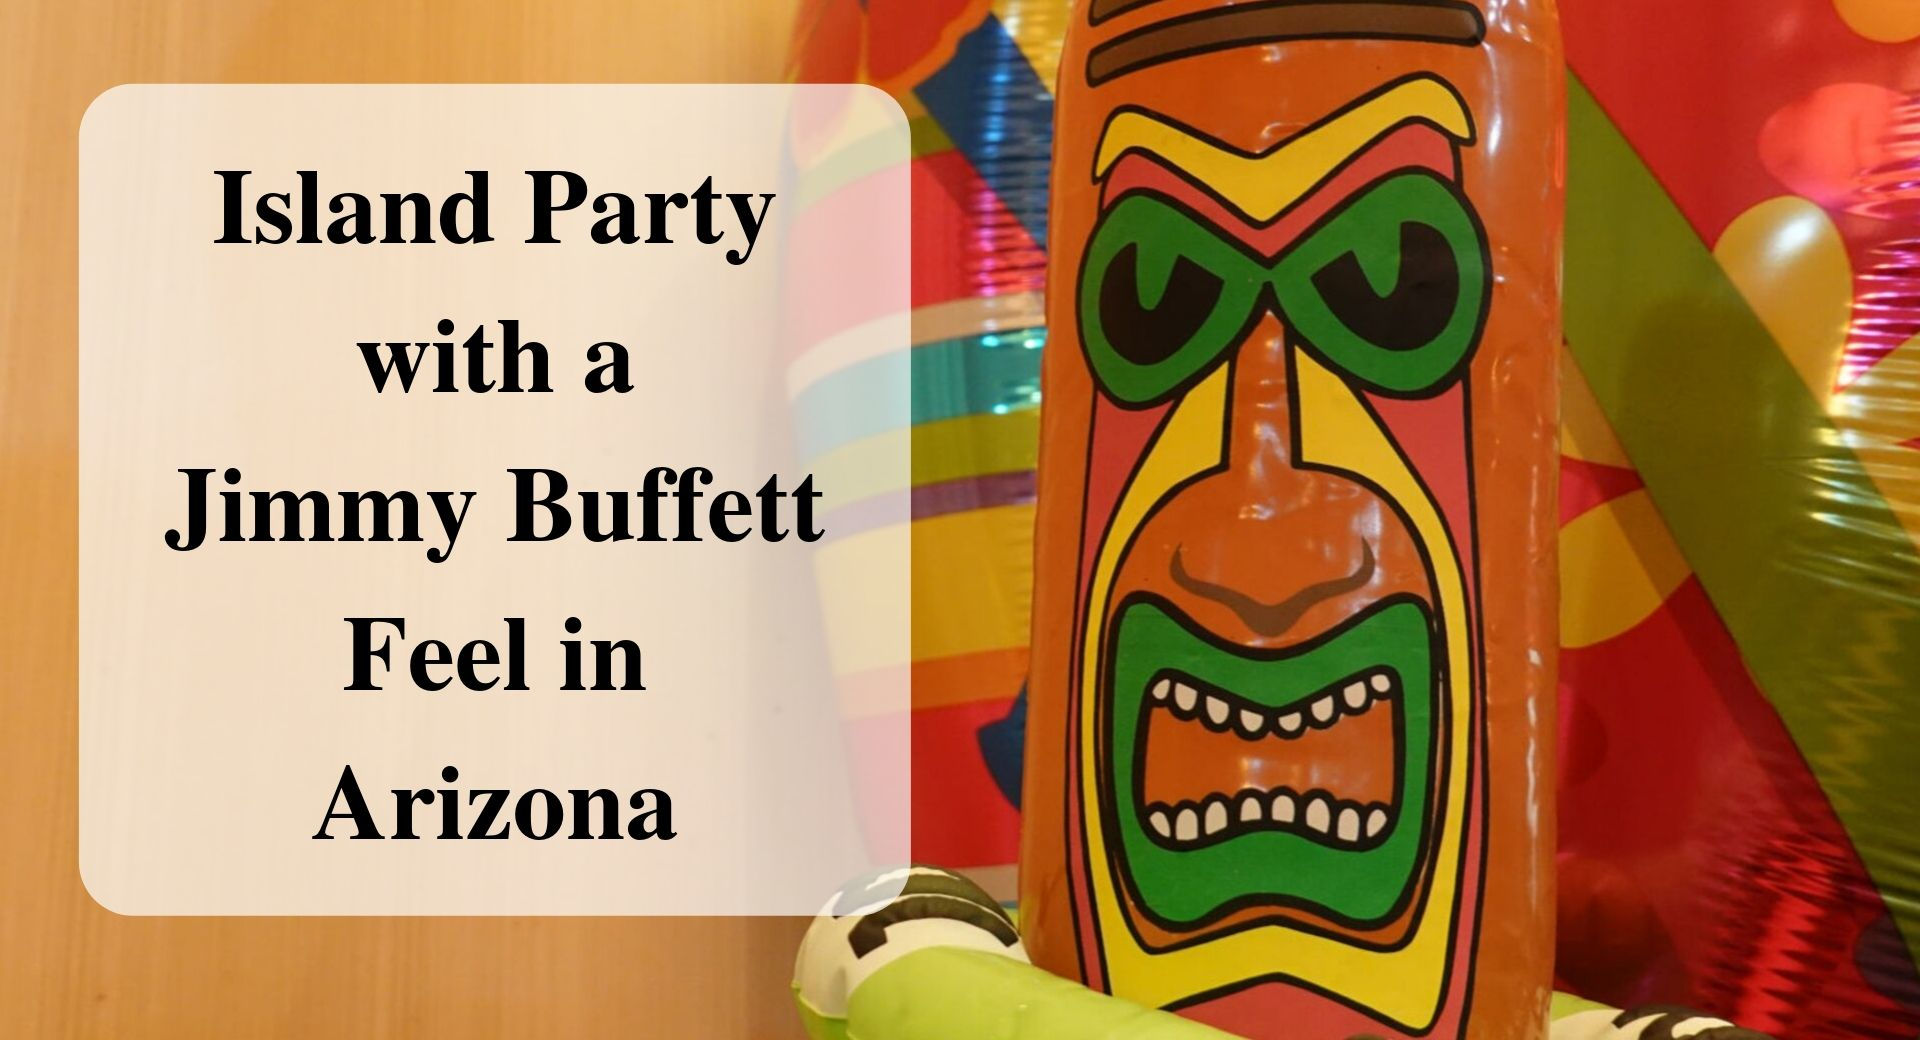 Island Party with a Jimmy Buffett Feel in Arizona Forever sabbatical